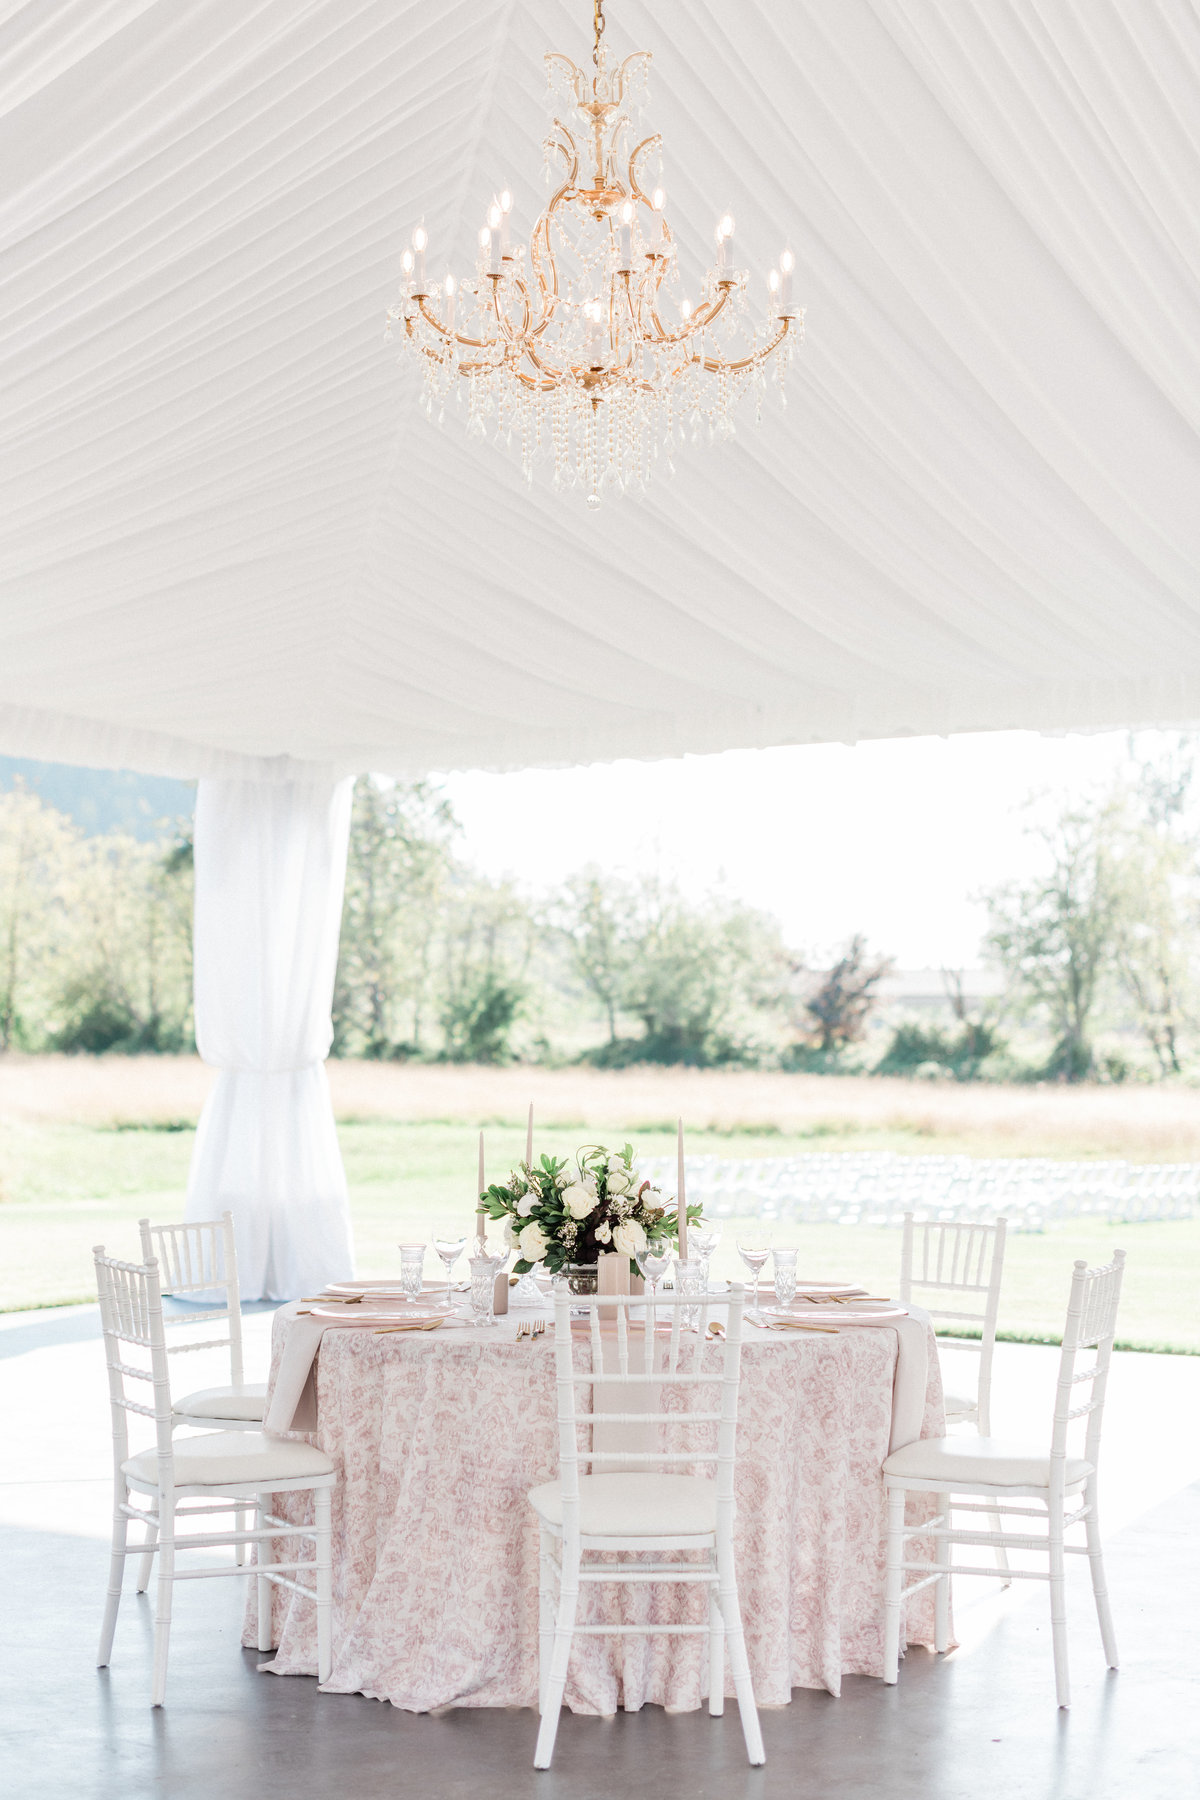 JanetLinPhotography_MountPeakFarm-11